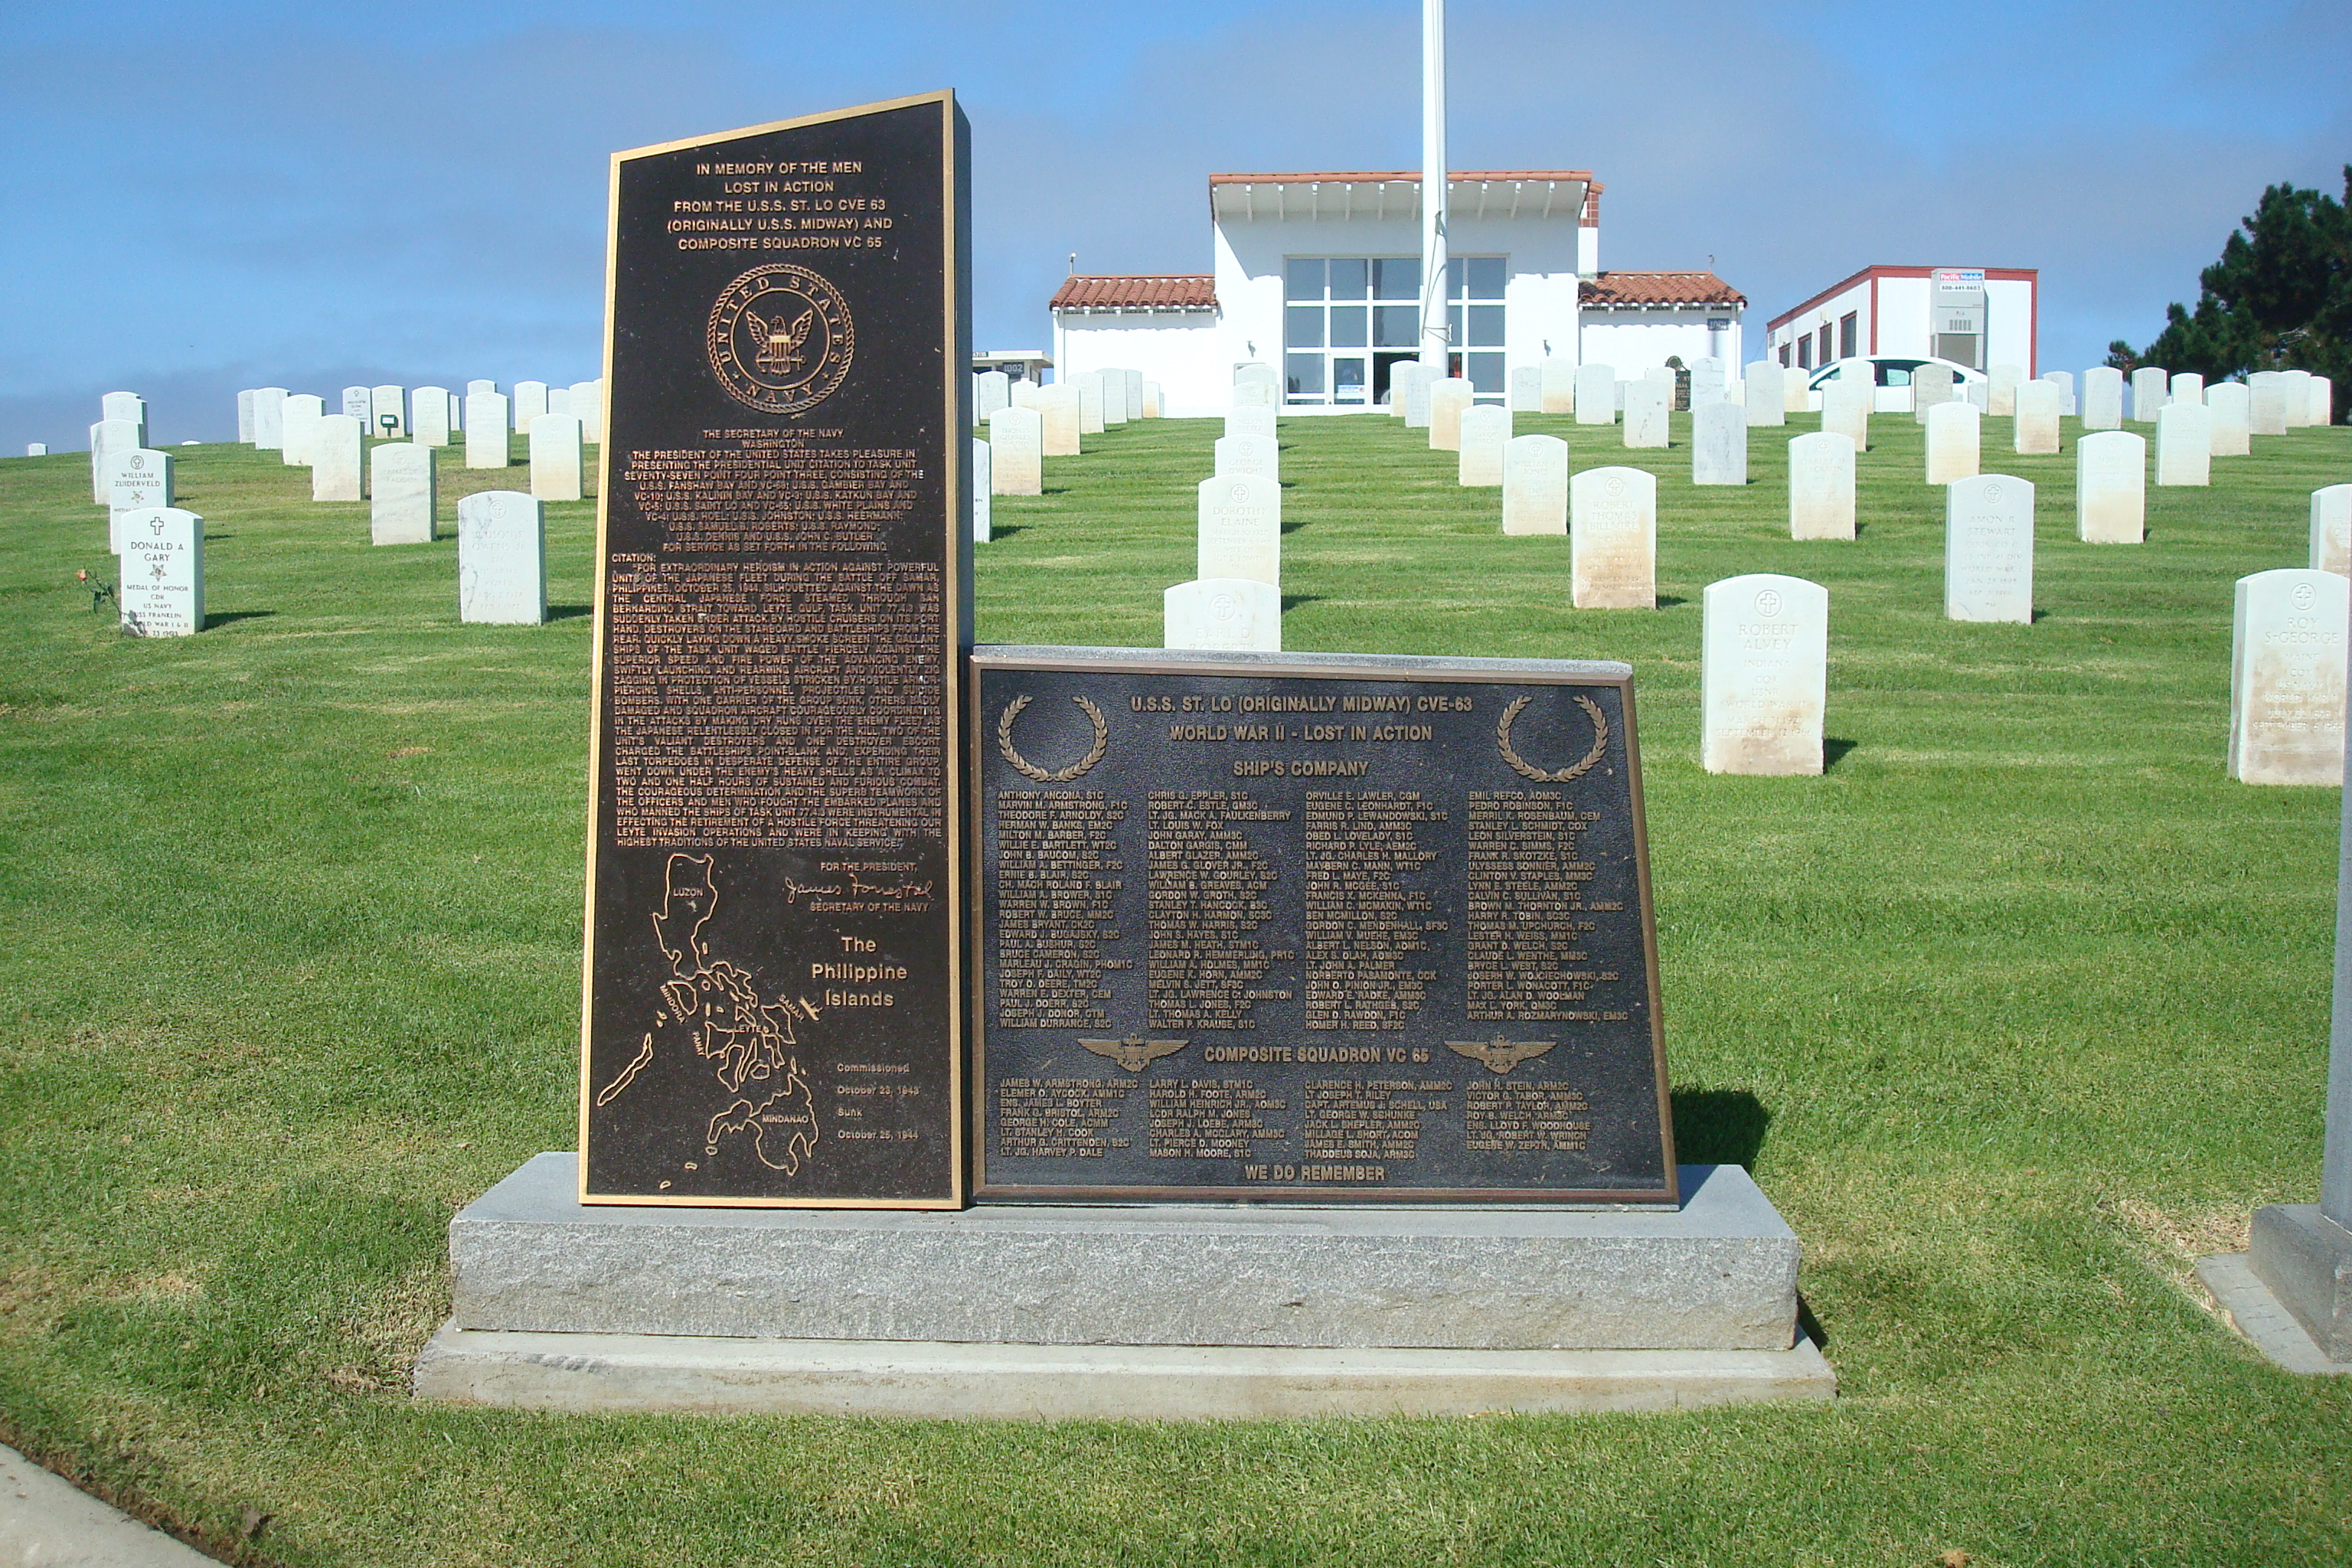 Monument to our fallen shipmates at Fort Rosecrans National Cemetery in San Diego, CA.